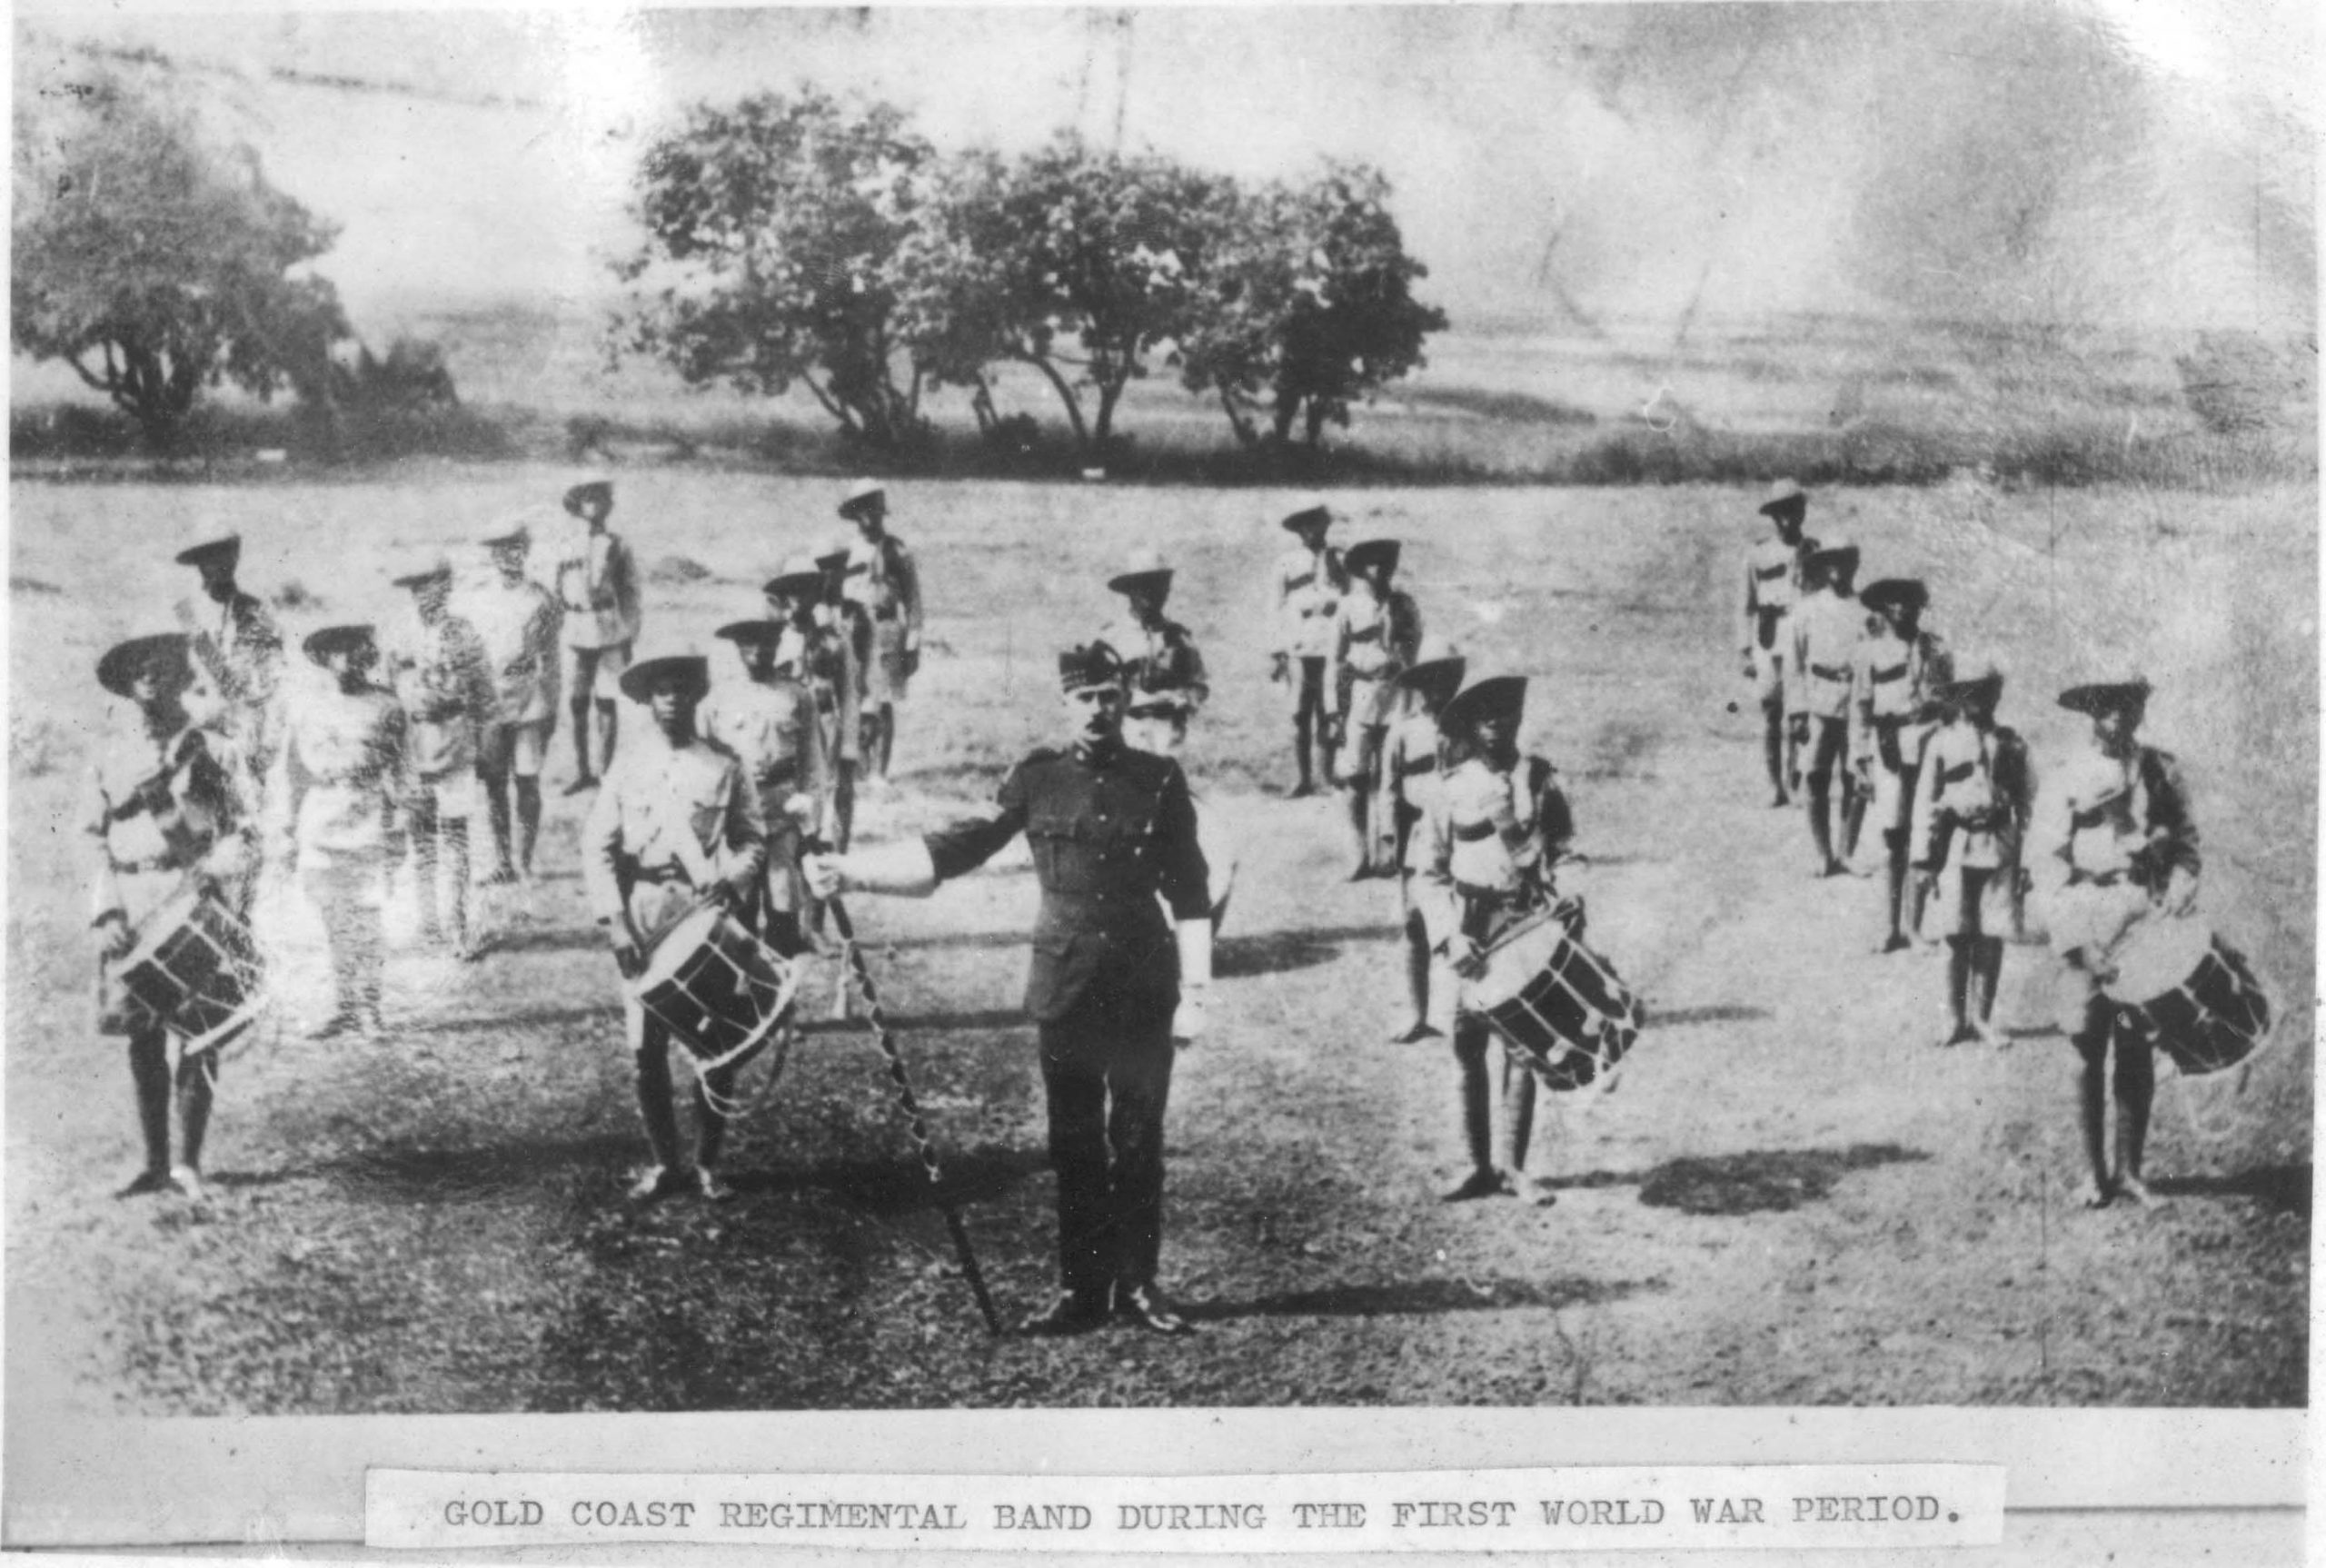 Gold Coast regimental band with white officer